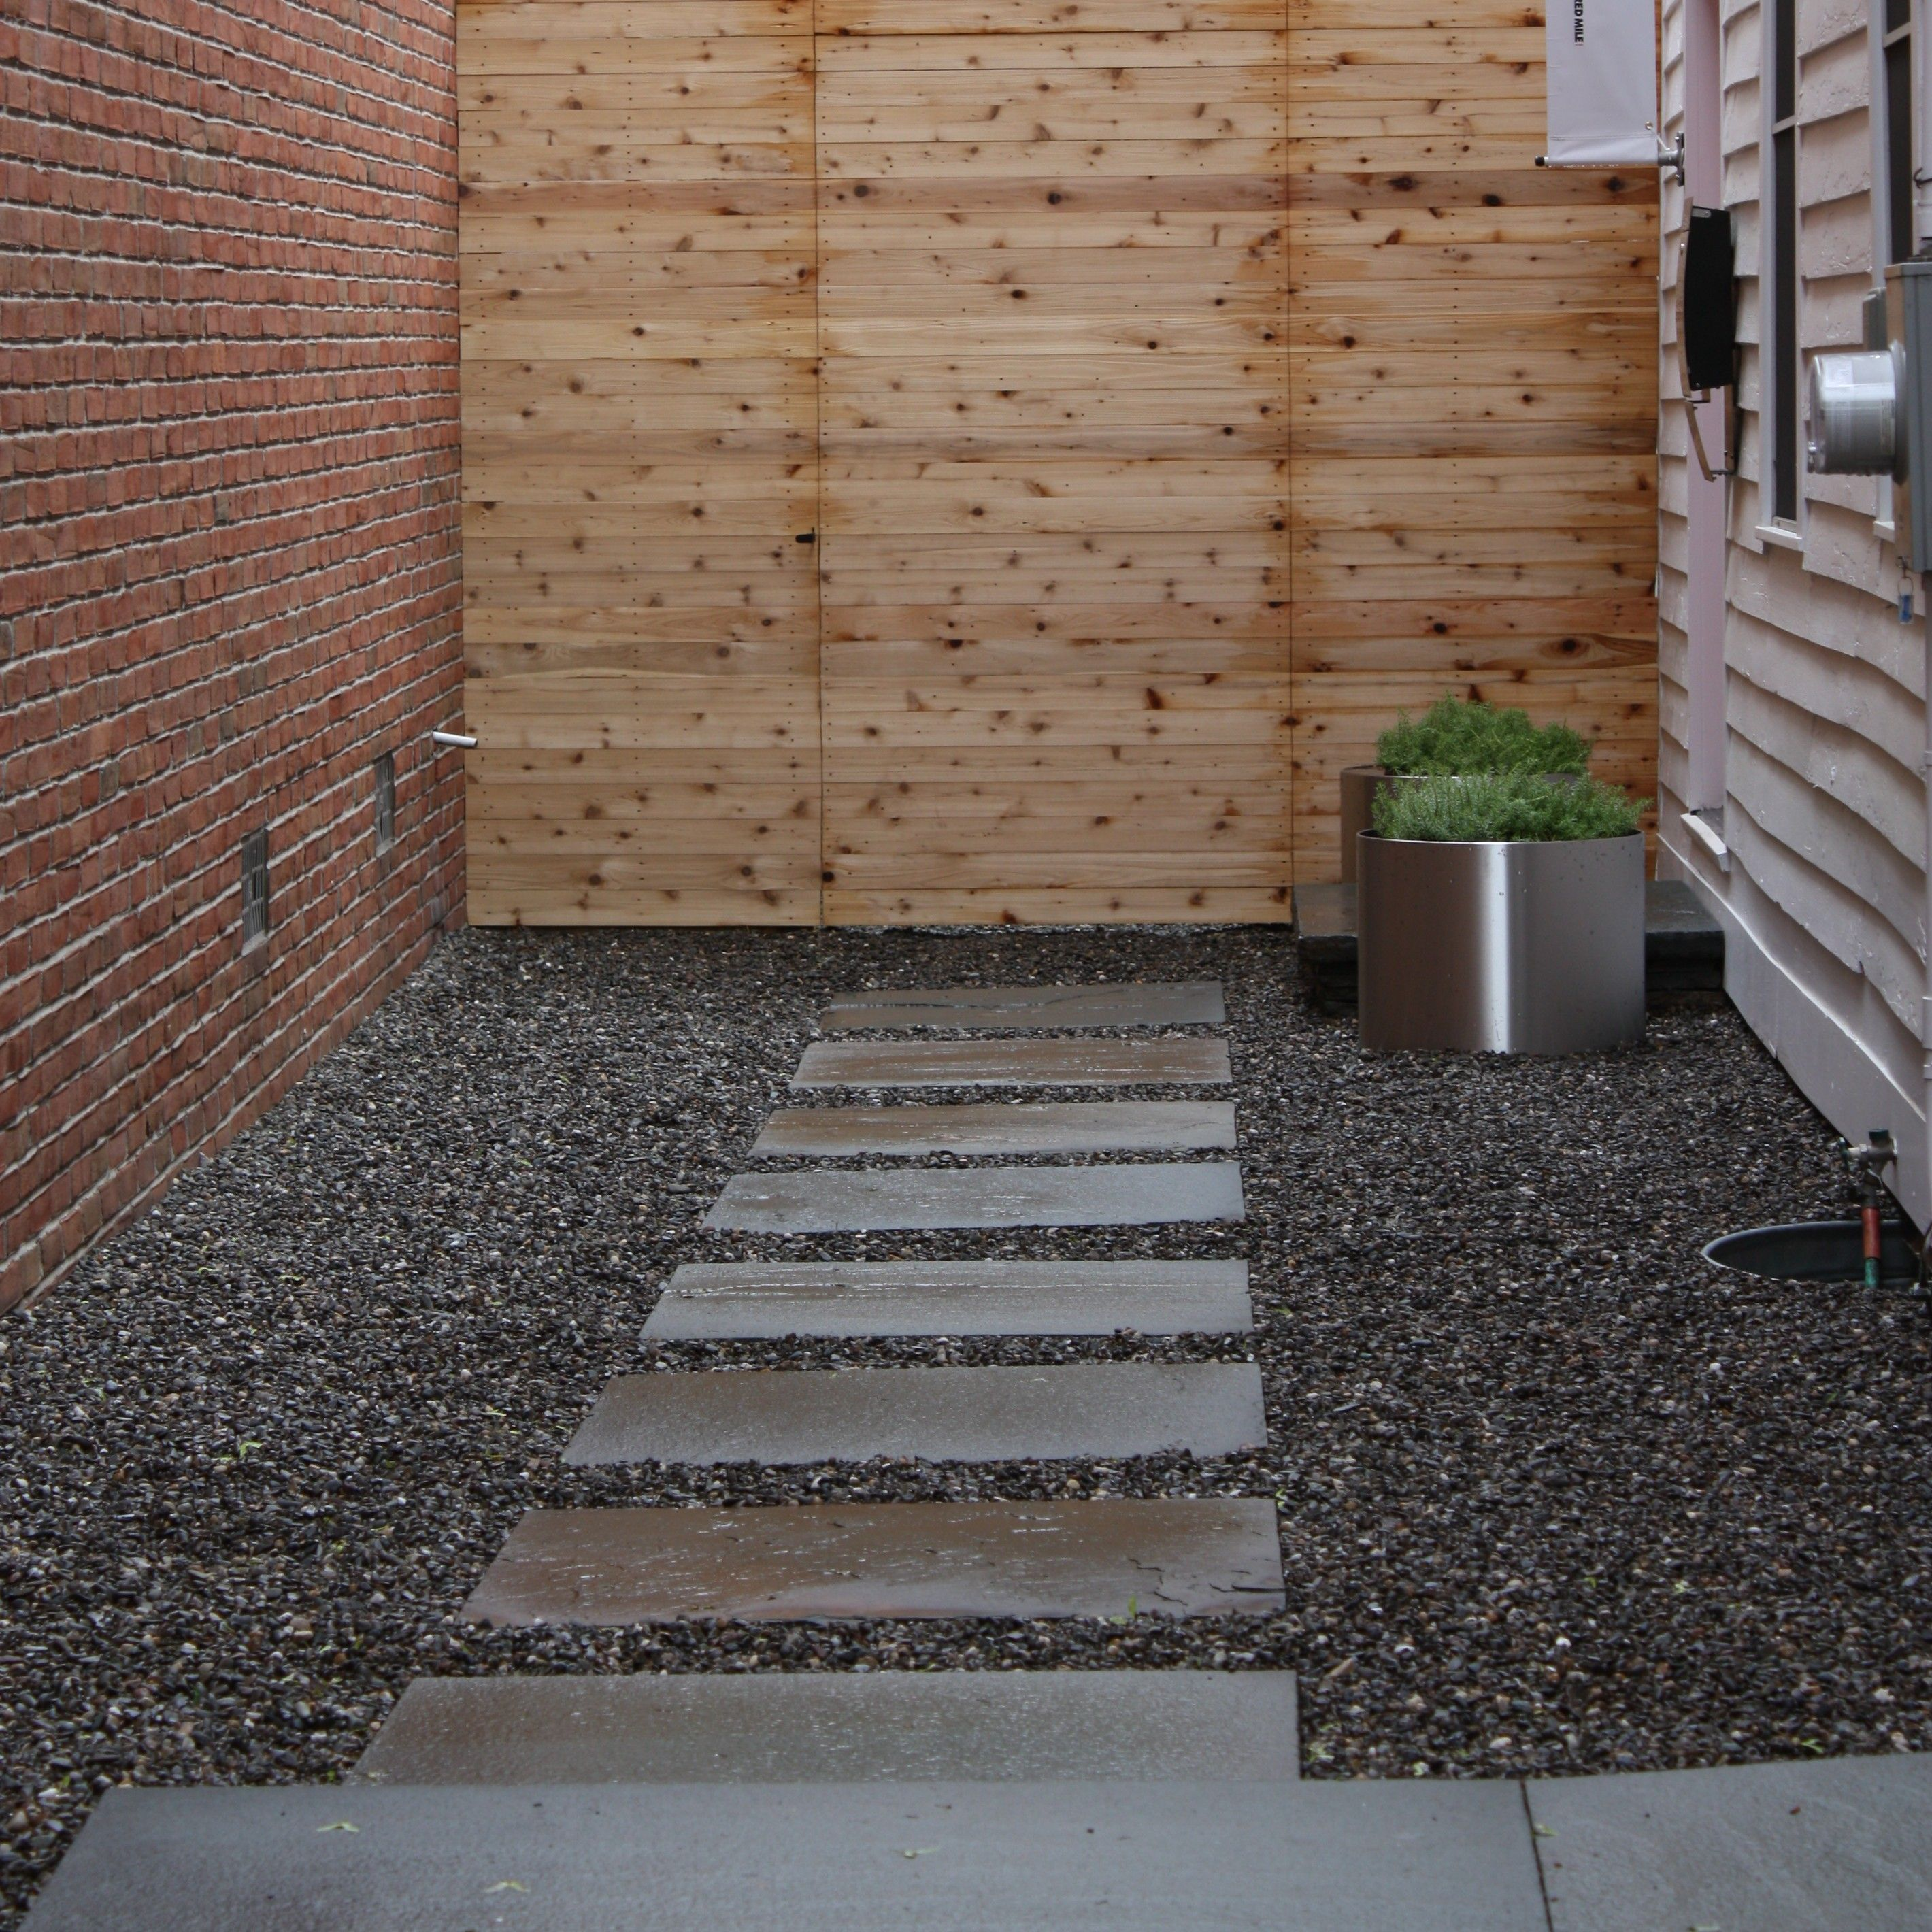 How to make a garden path with gravel - Pea Gravel Walkway Next To Driveway Google Search